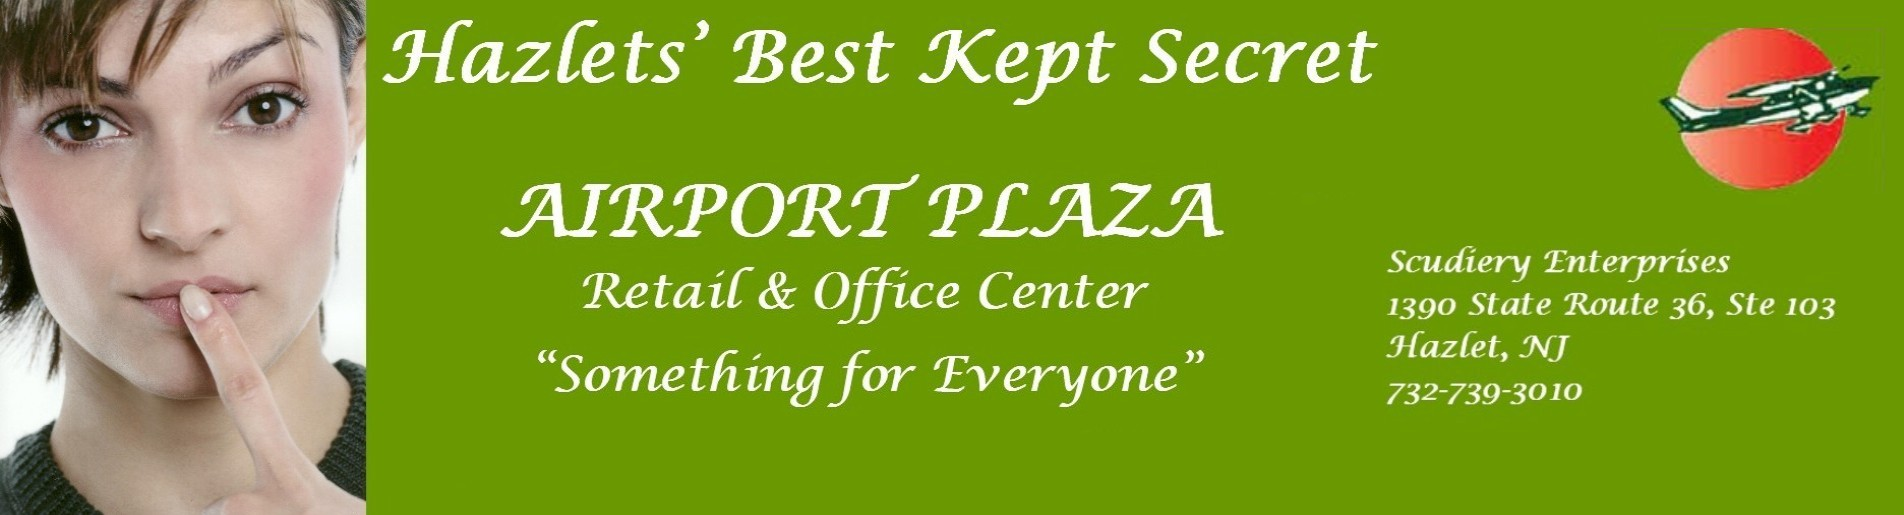 http://airportplazashopping.com/wp-content/themes/Directory/images/slide4.jpg